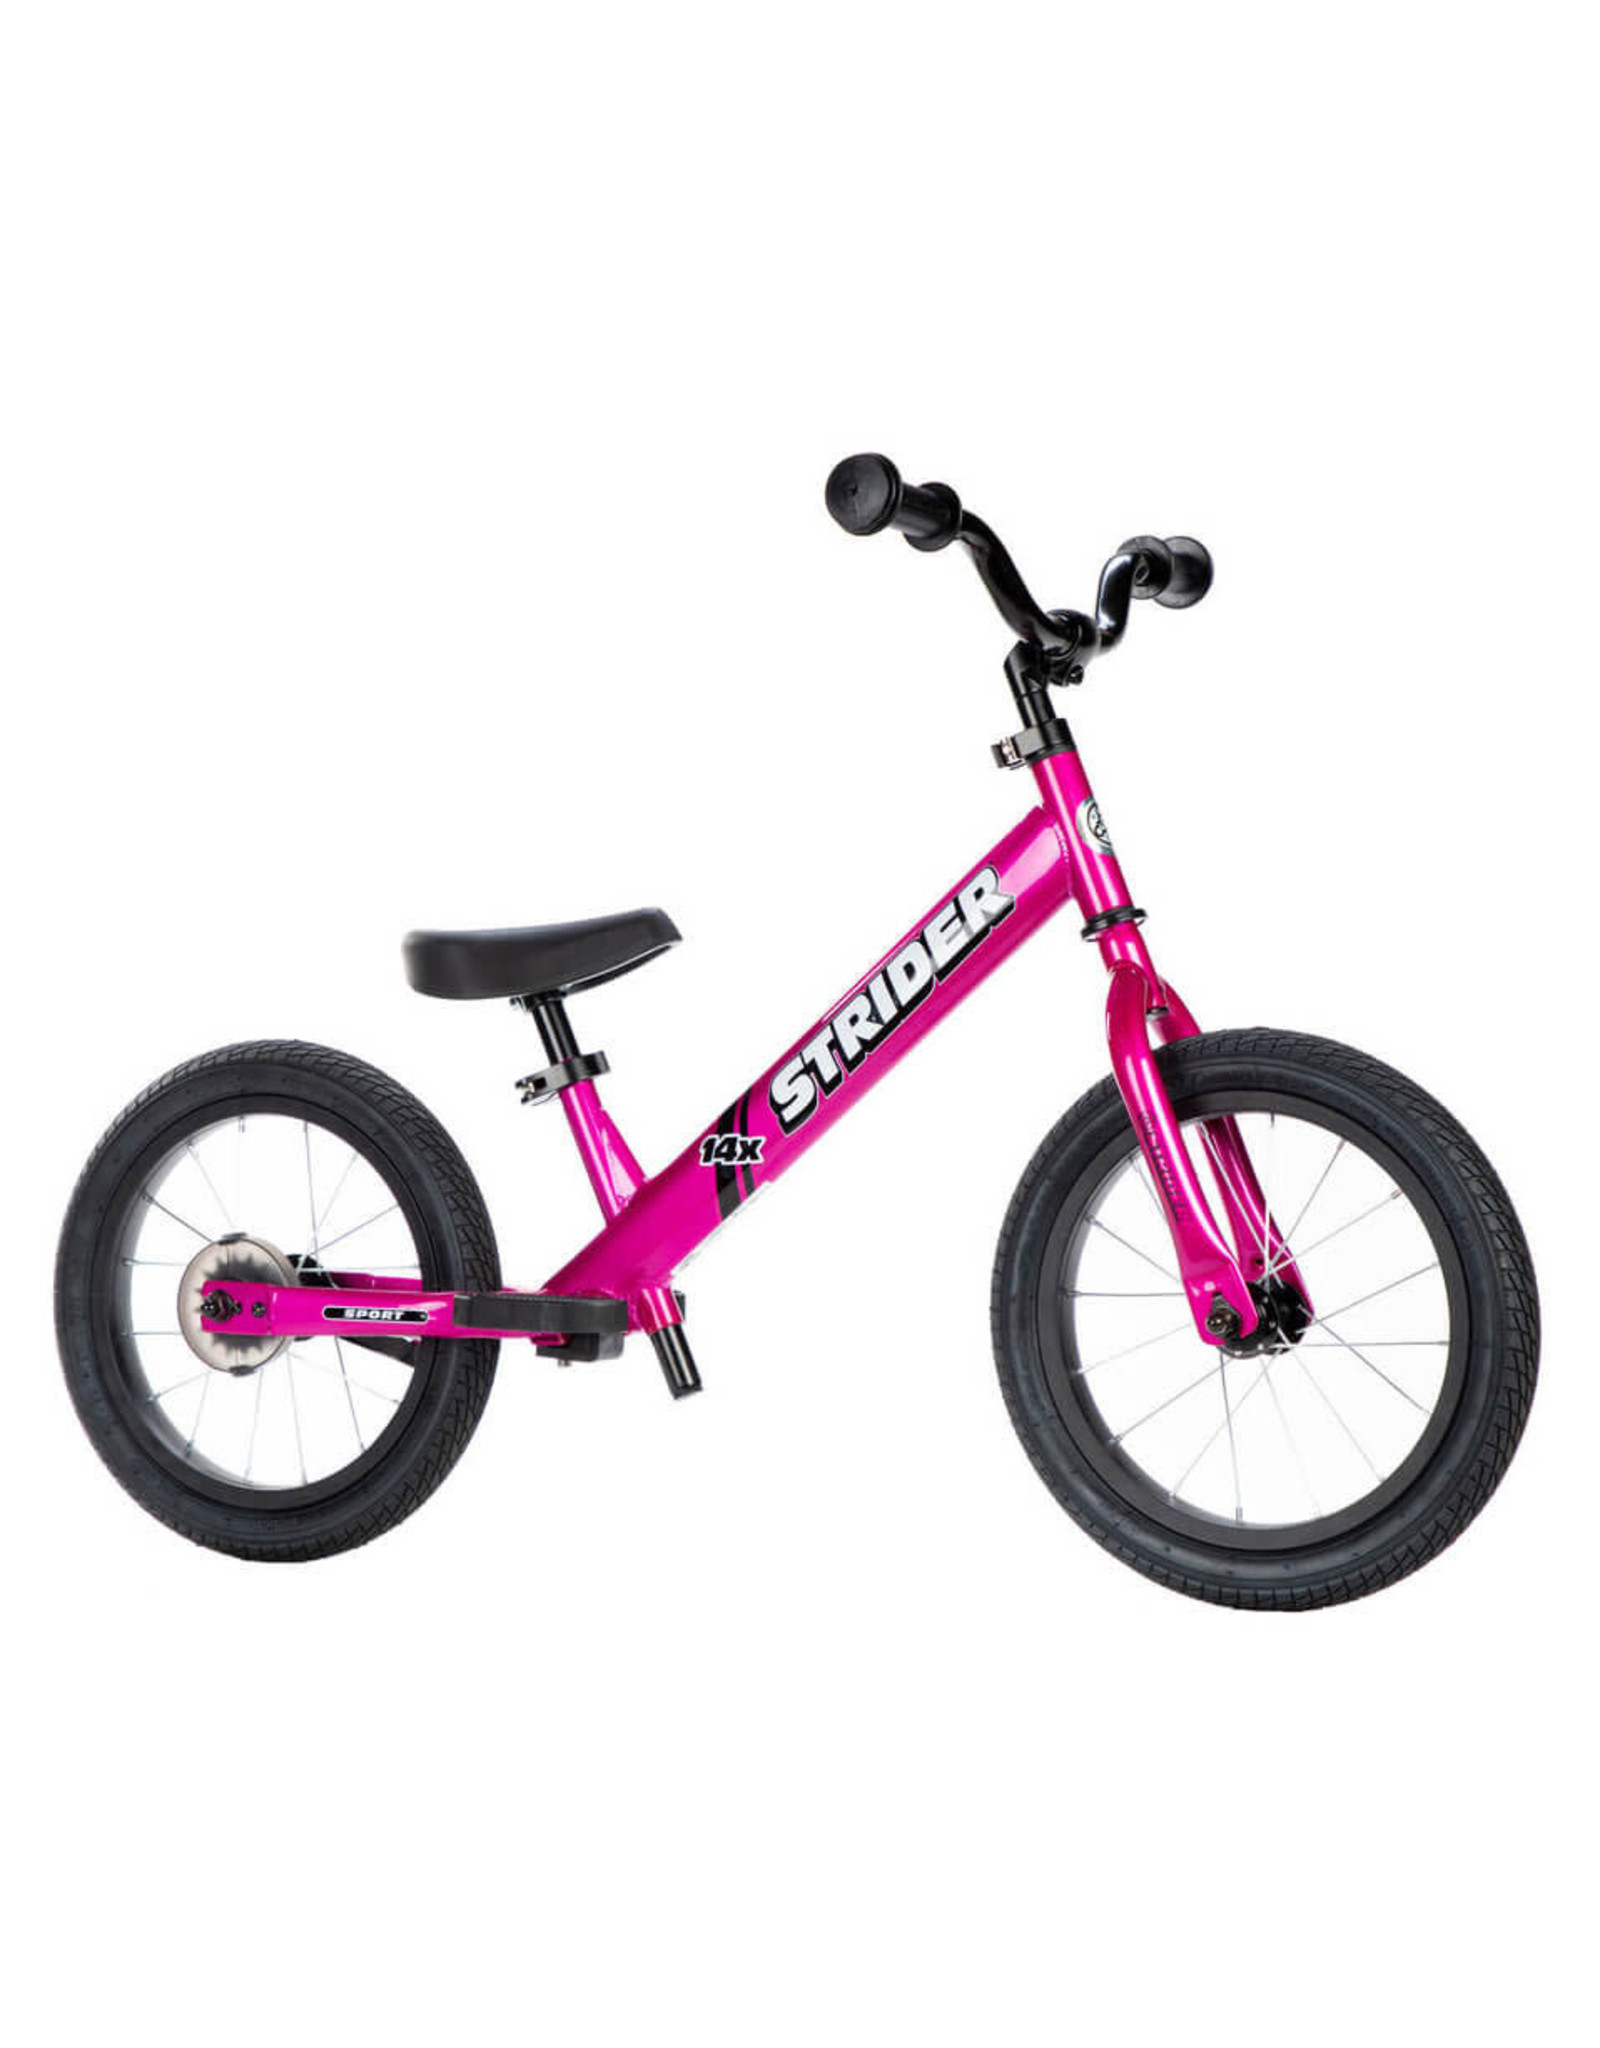 STRIDER Strider 14x Sport Balance Bike - Pink 3-6 Years